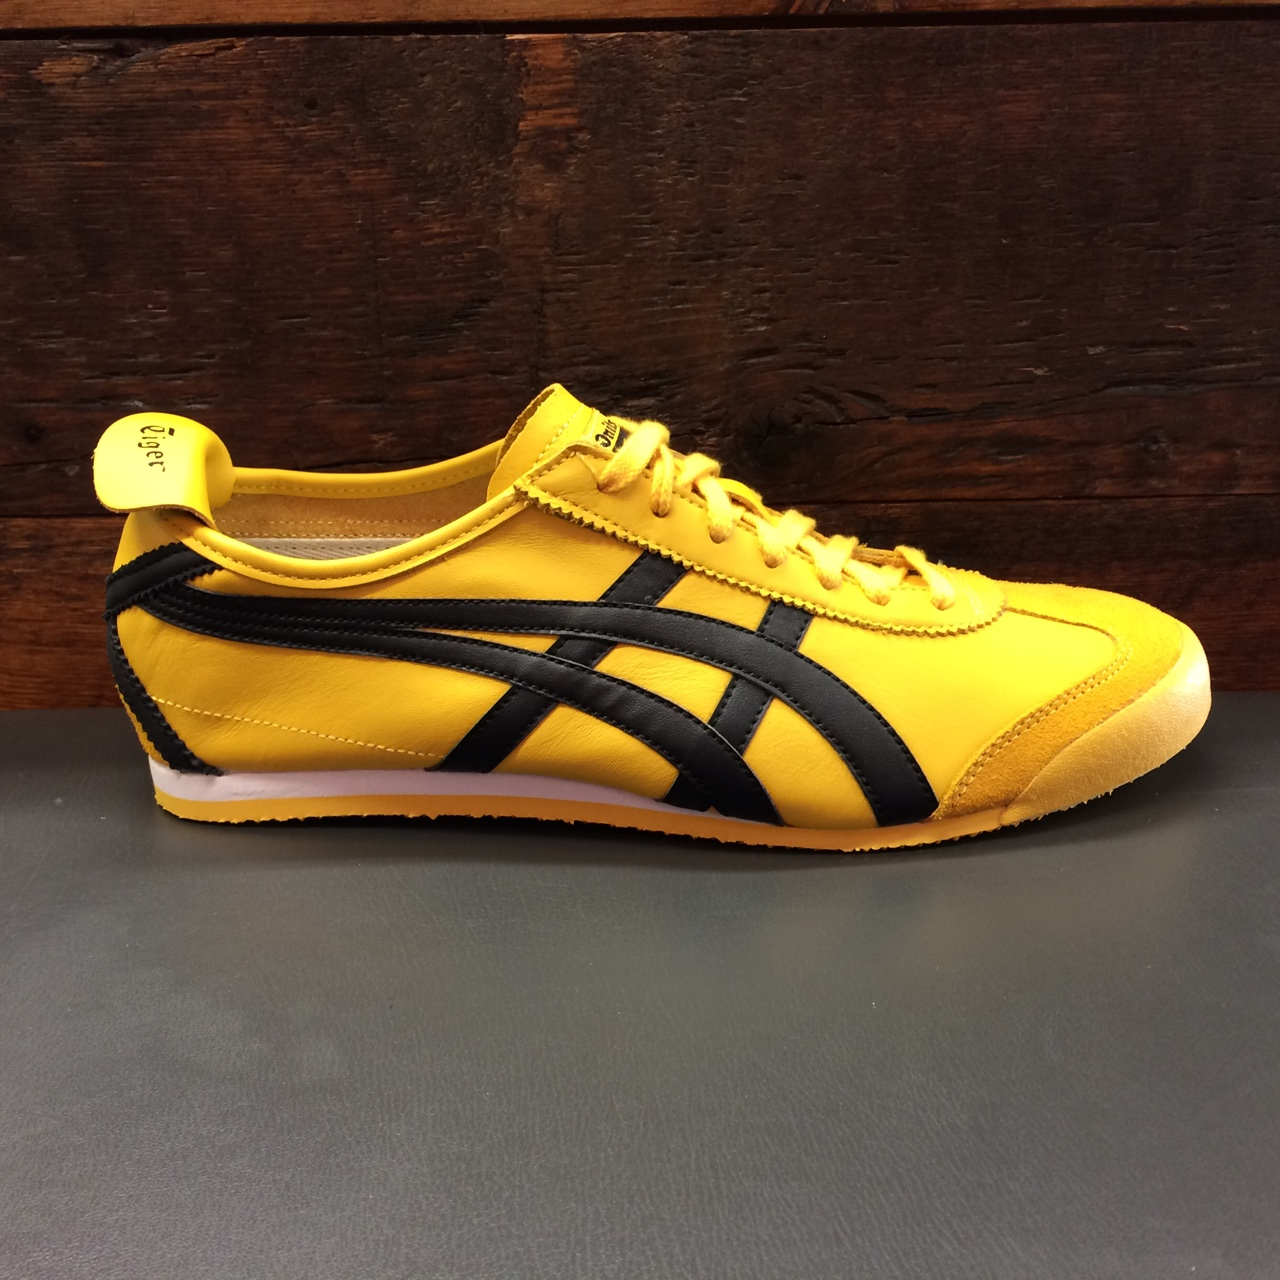 newest 0ebc6 e74b9 Asics. Tiger Onitsuka, Mexico 66. Yellow/black. Size... - Depop